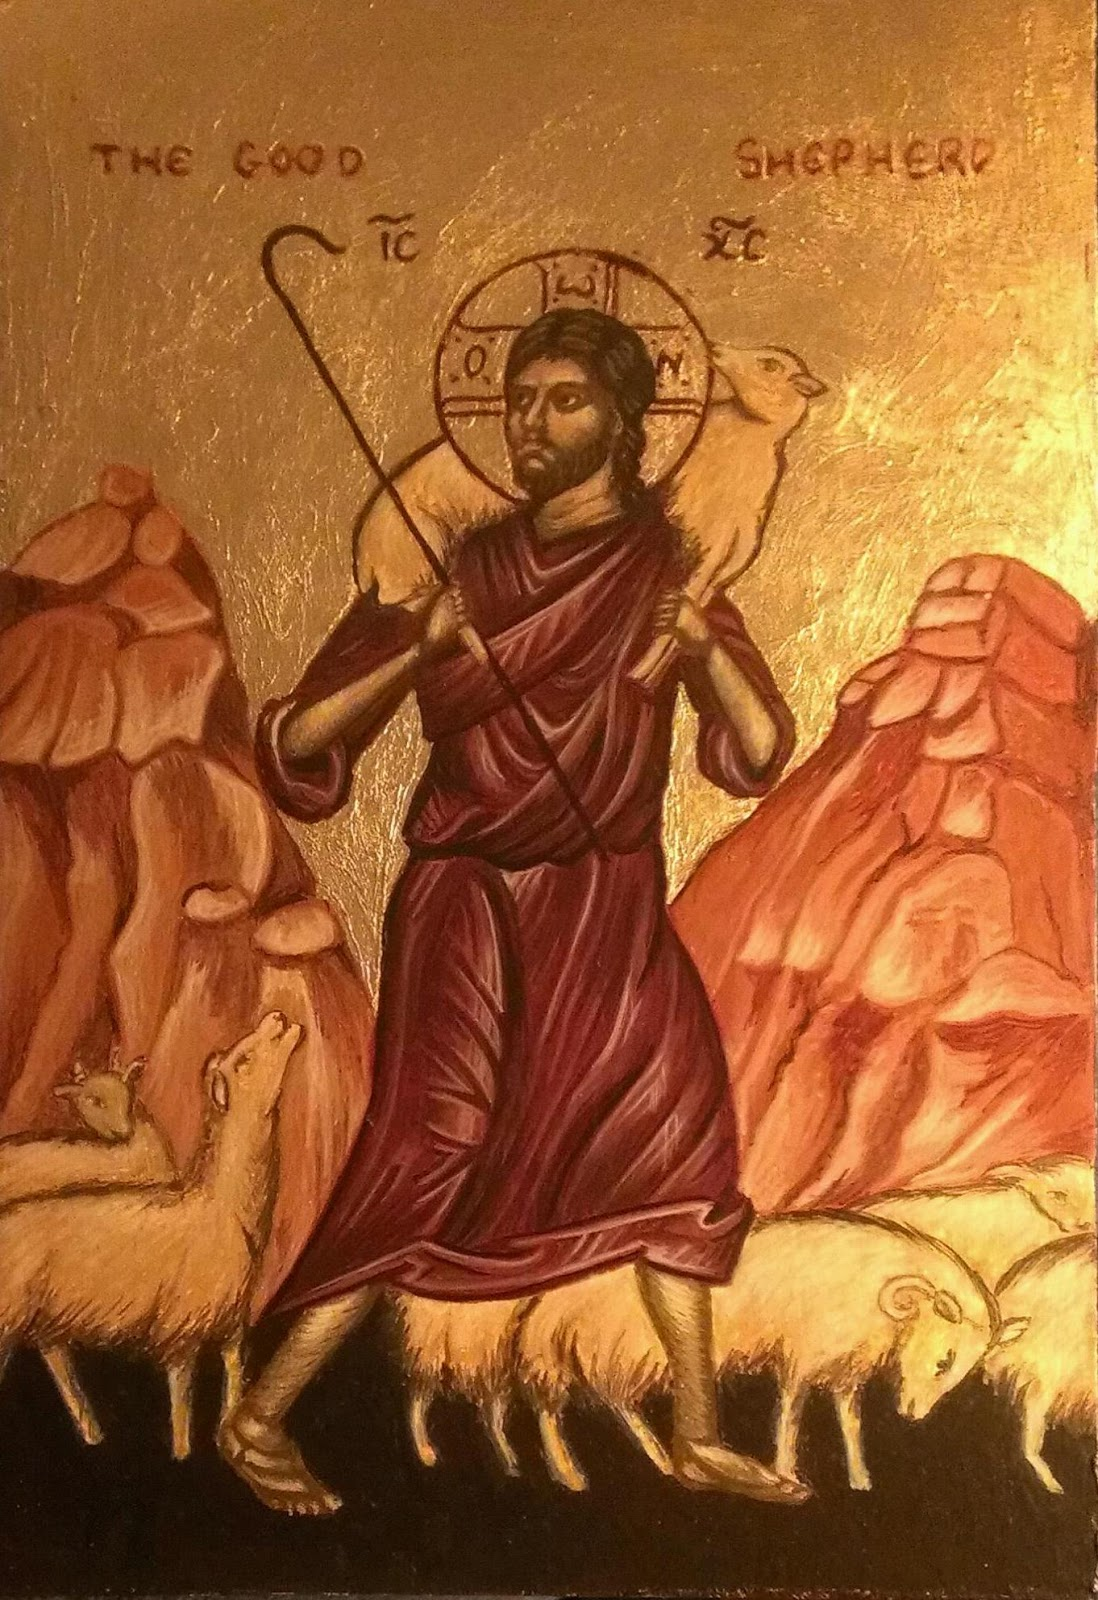 The good shepherd icon this is the good shepherd icon i have recently